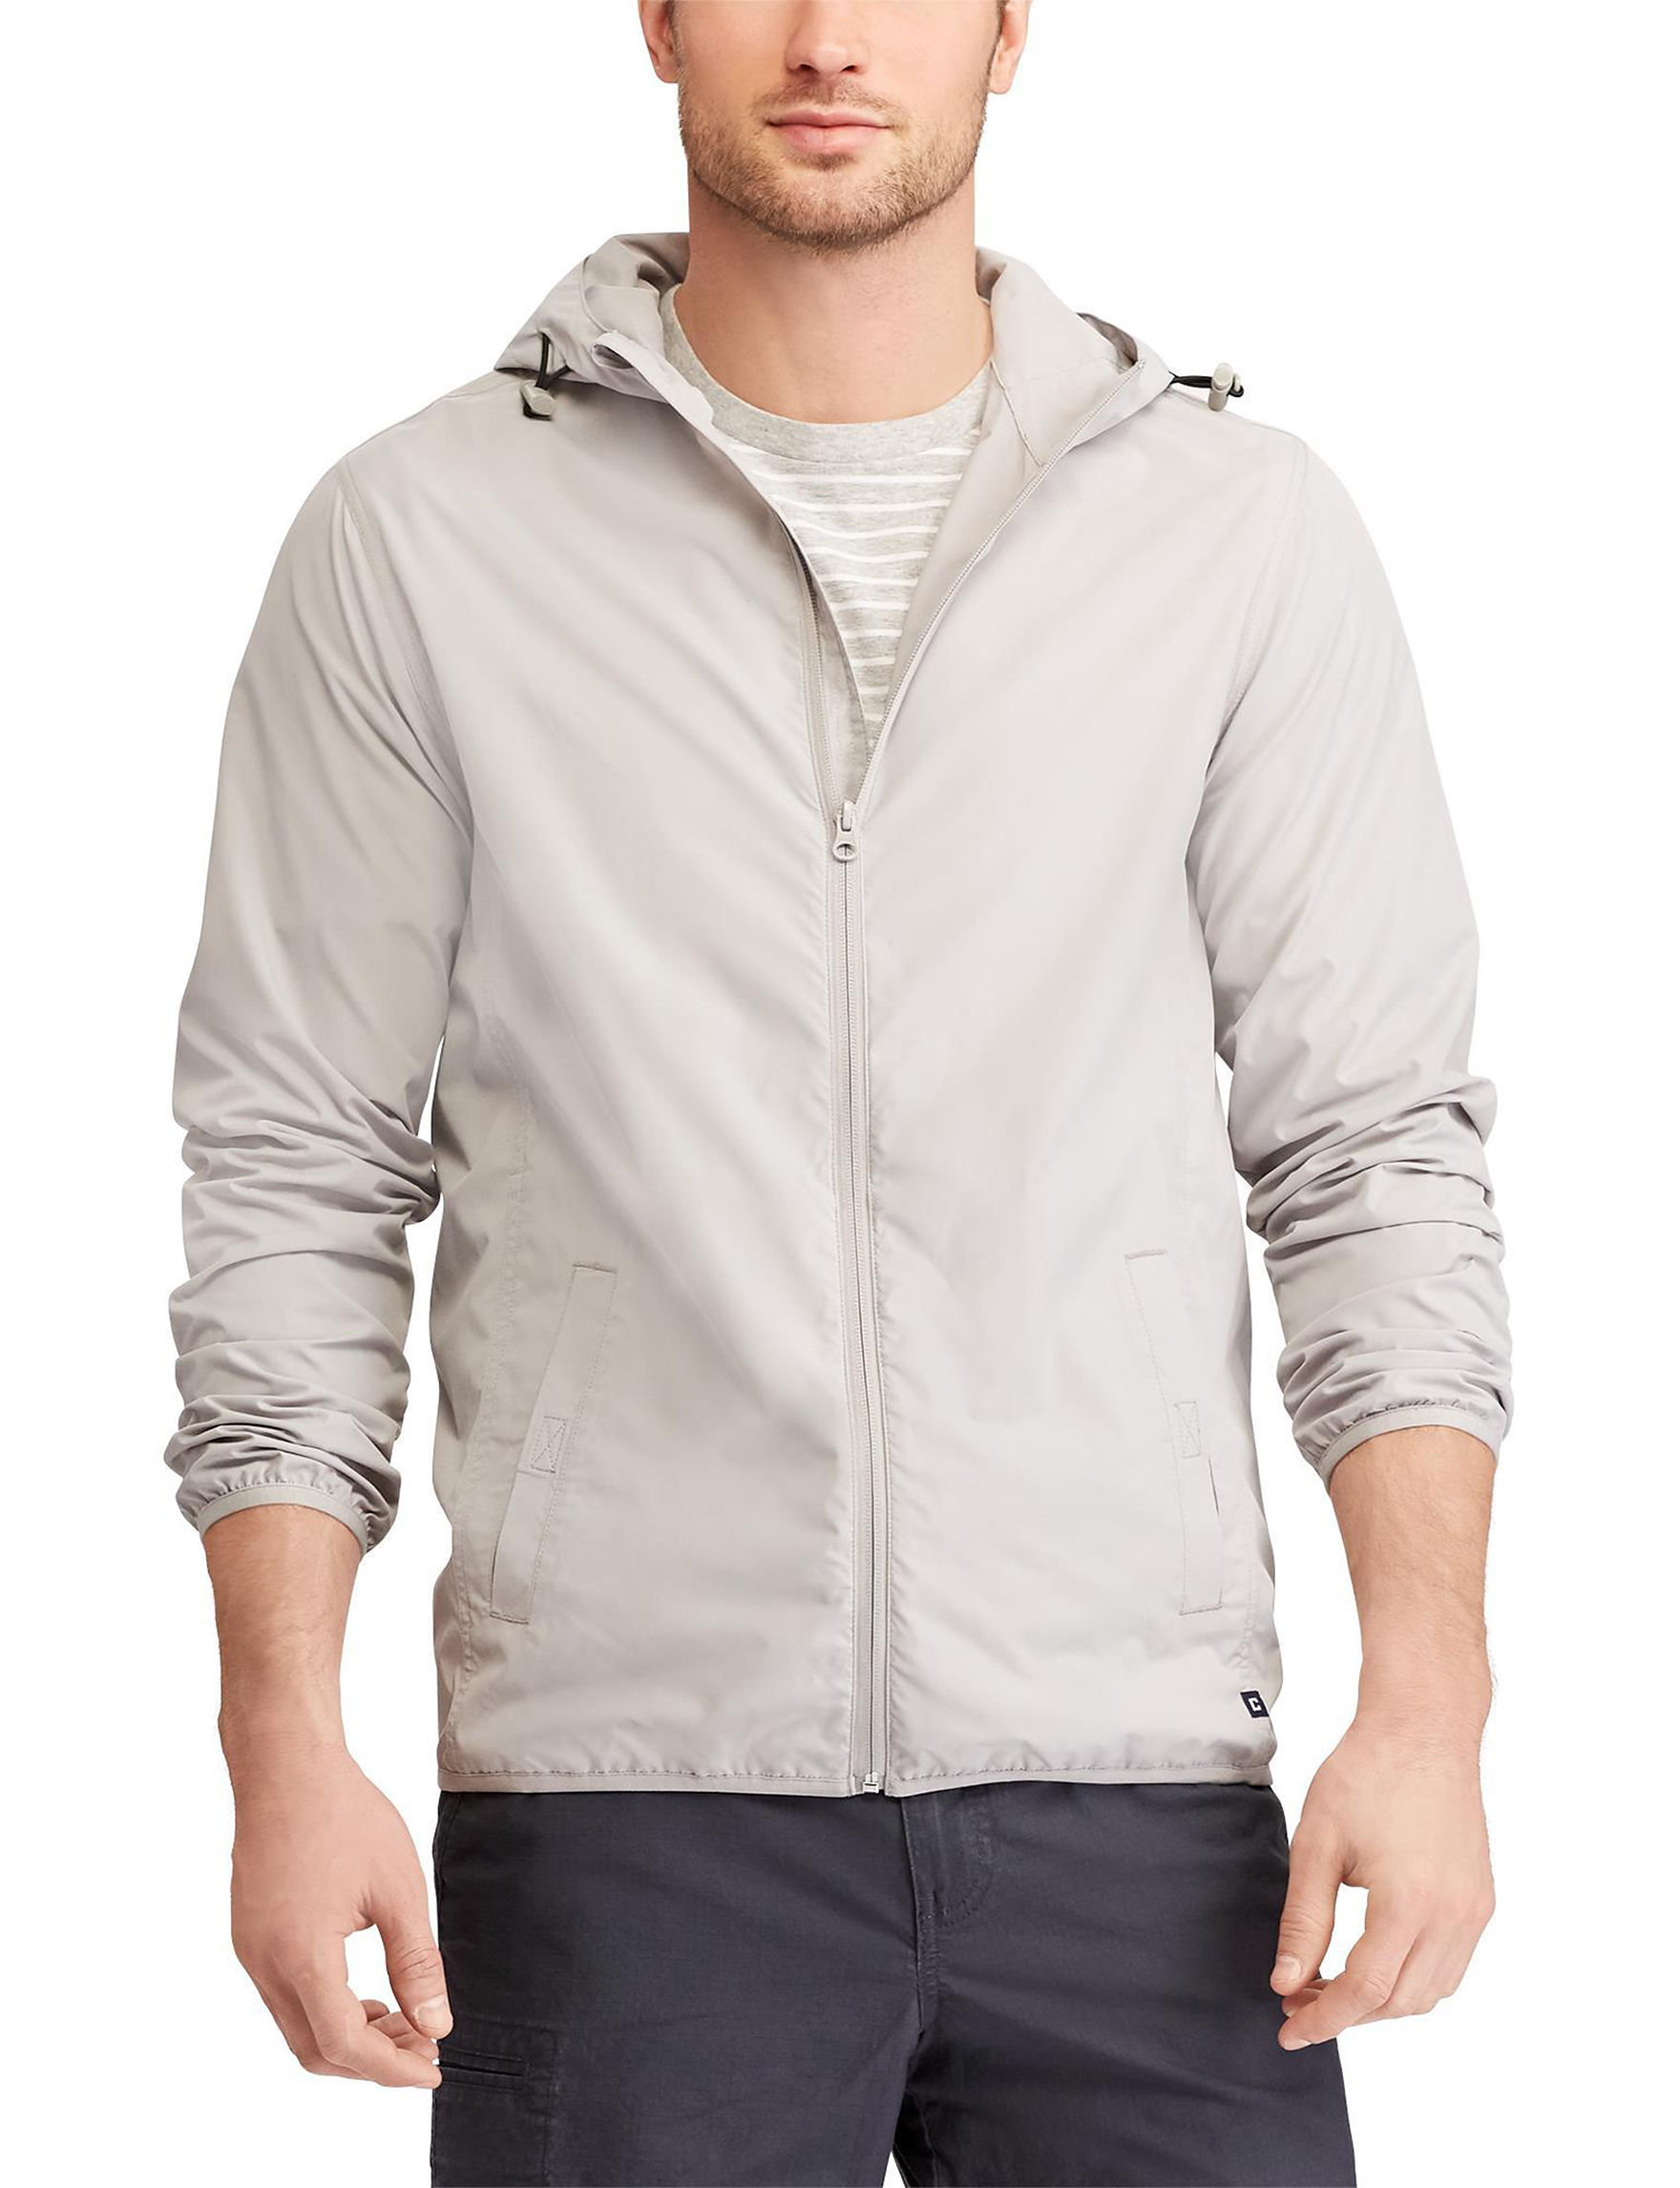 Chaps Grey Insulated Jackets